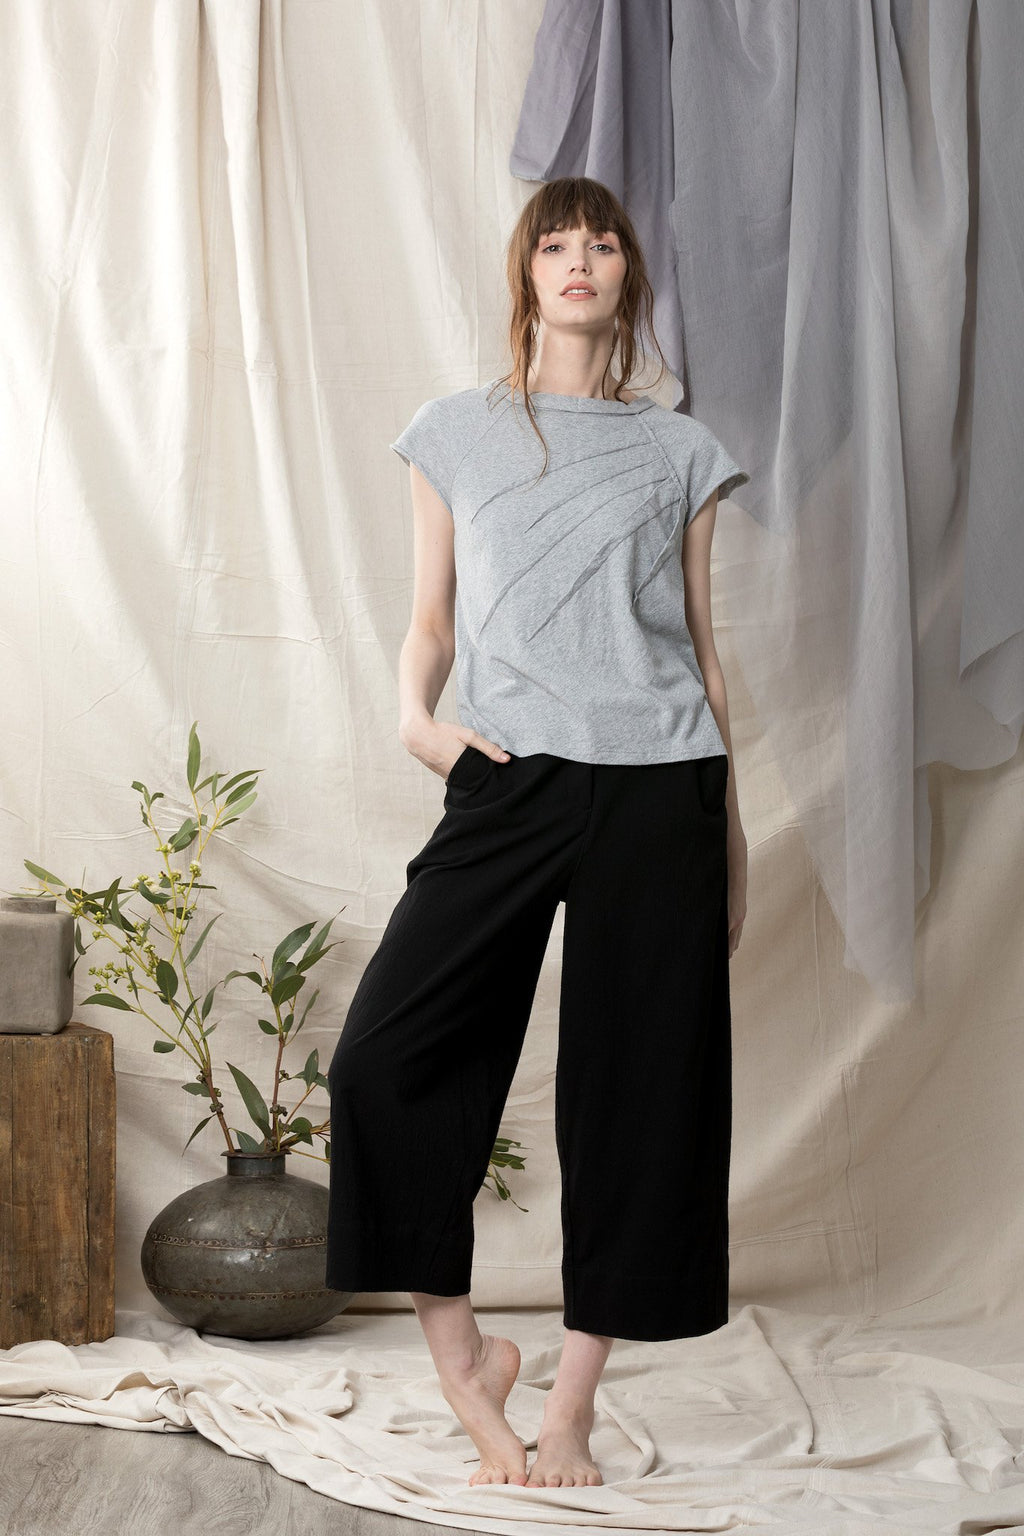 Swallowtail Top Shirts + tops Ethical Sustainable Vegan Organic Australian fashion womens clothes